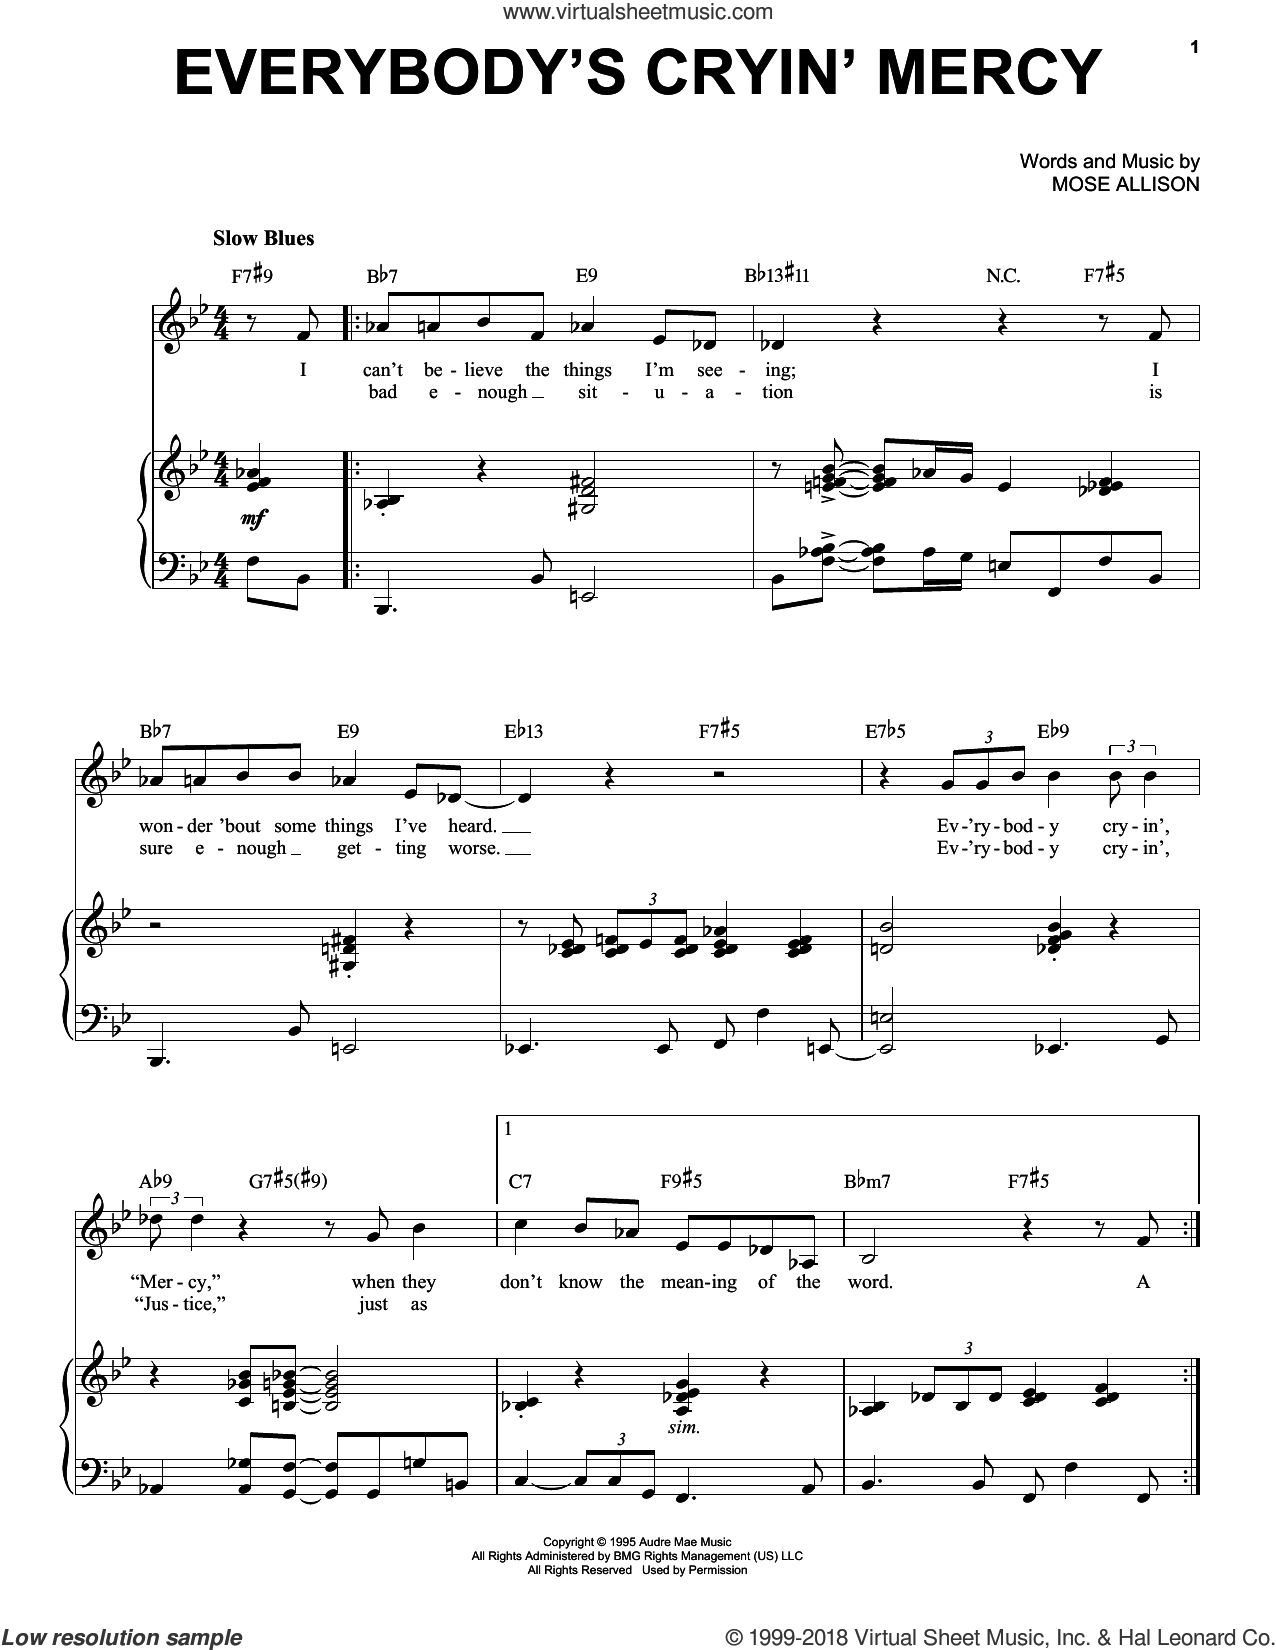 Everybody's Cryin' Mercy sheet music for voice and piano by Mose Allison, intermediate skill level